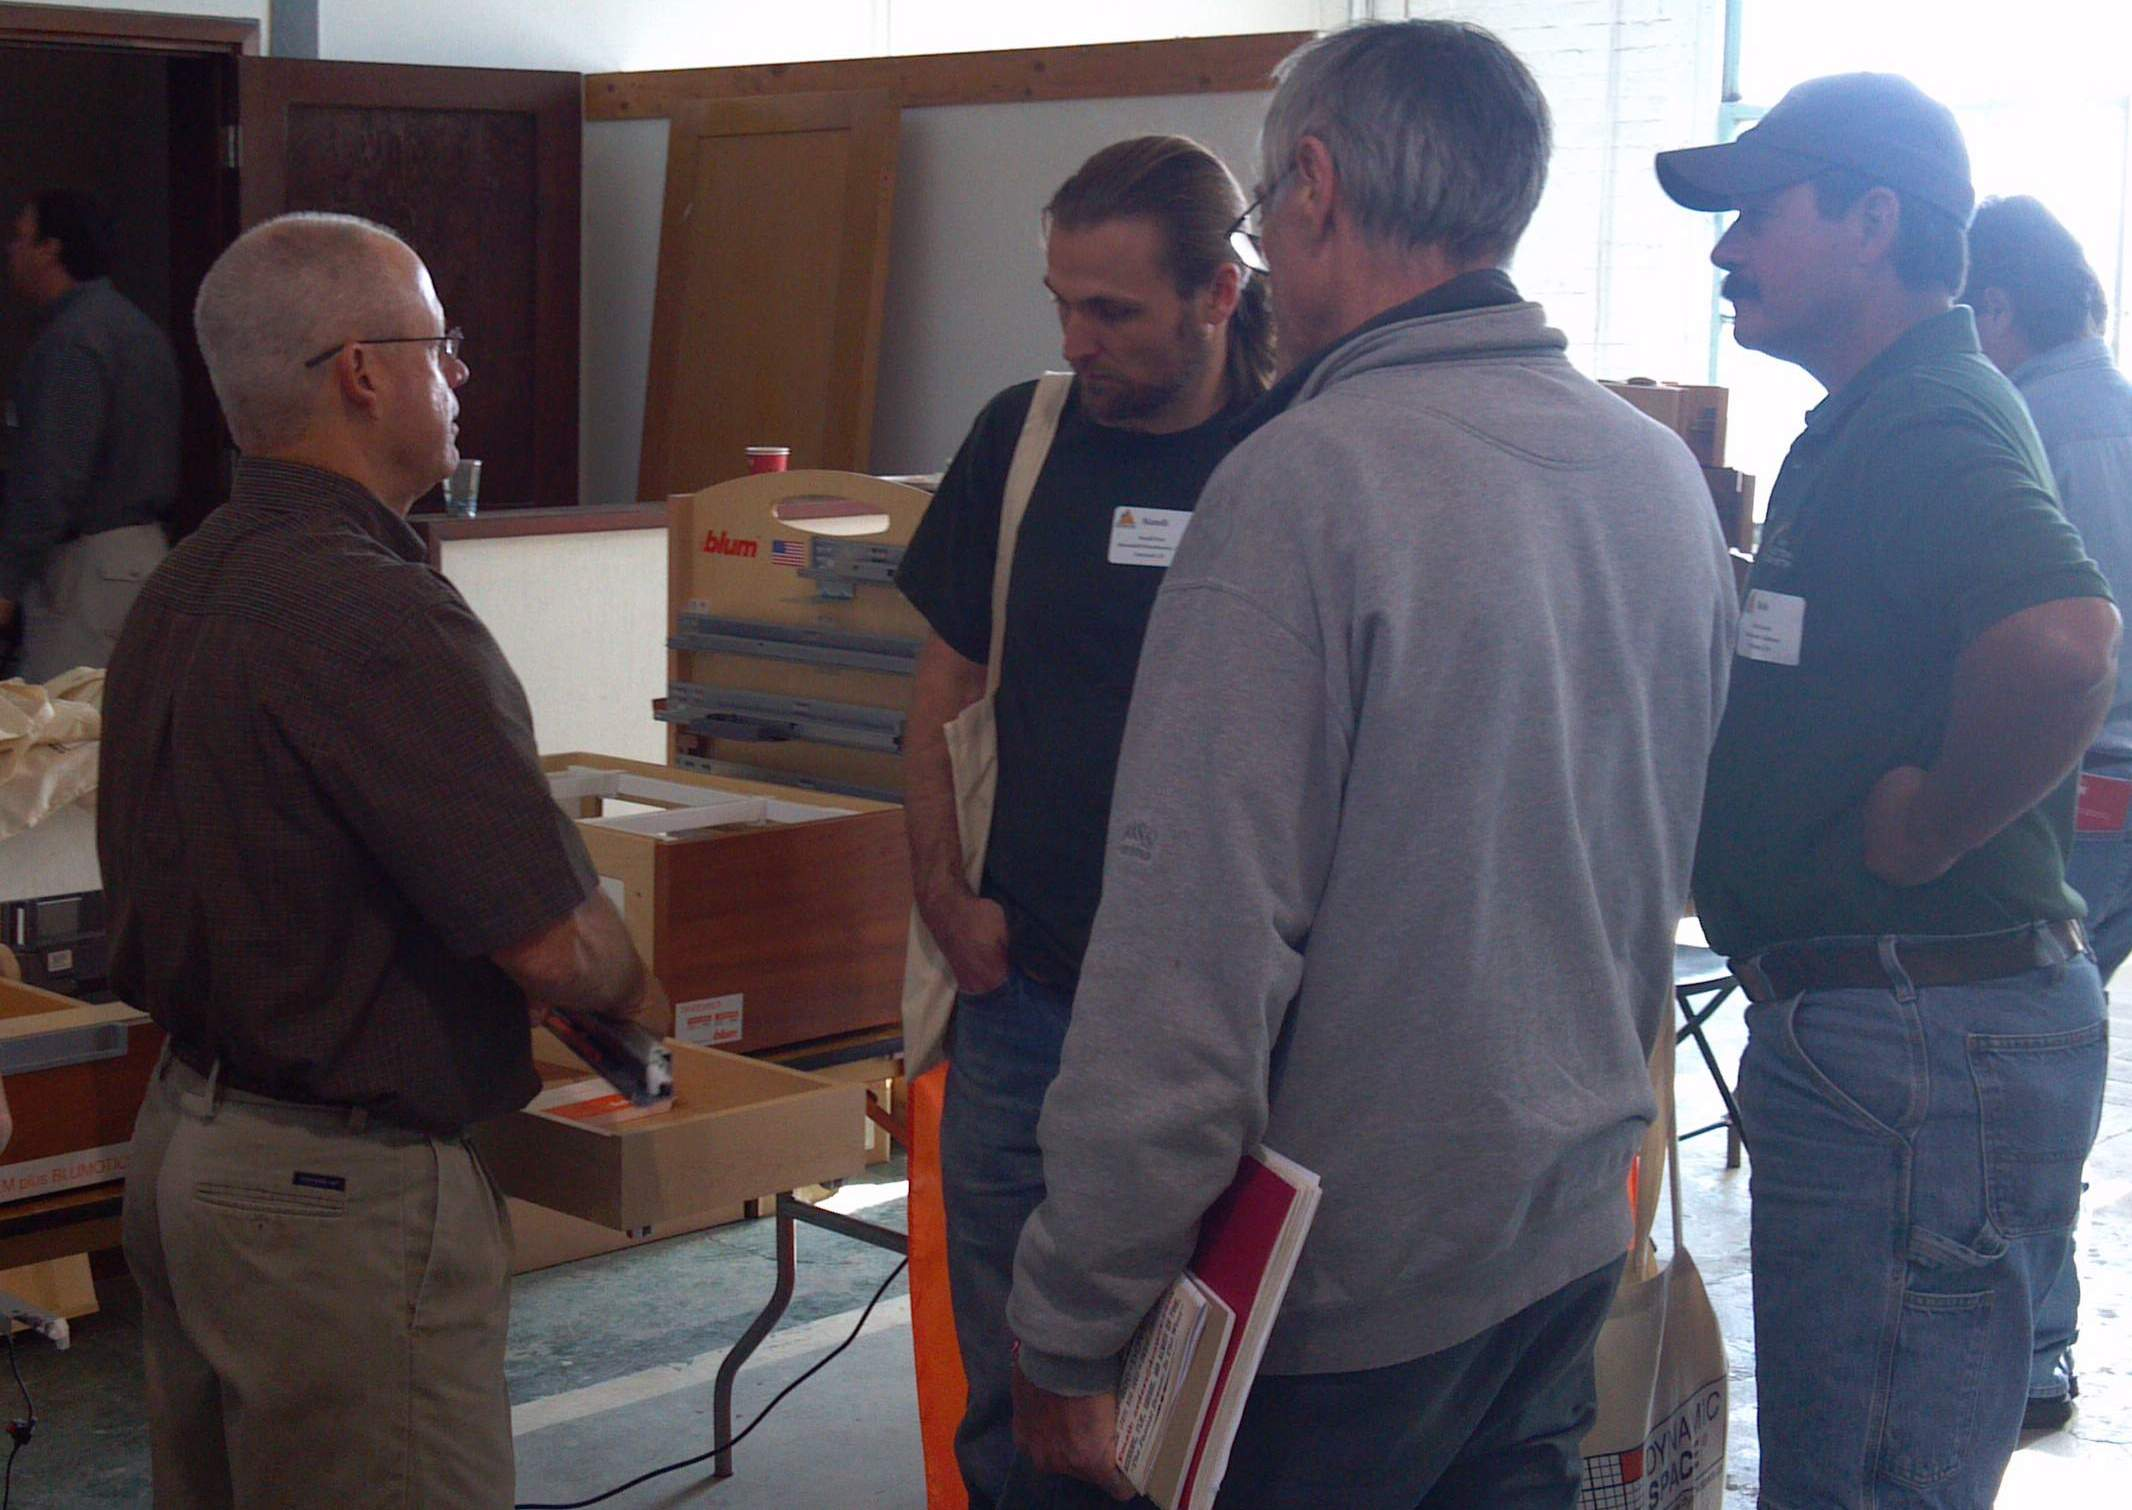 At the Cabinet Makers Association Meeting